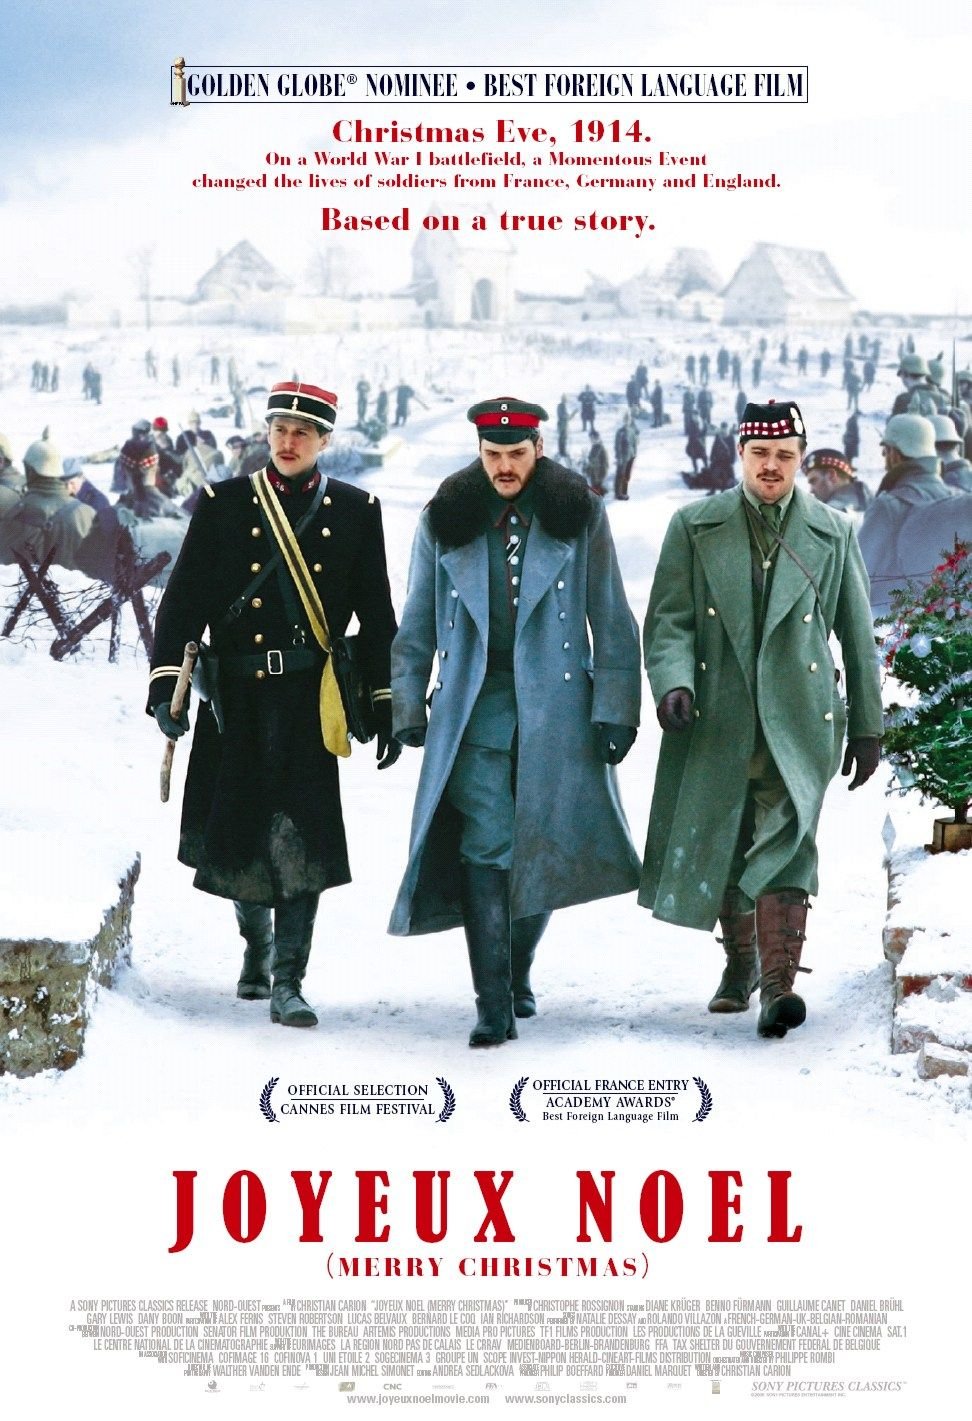 50+ Best Christmas Movies of All Time - Classic Holiday Films